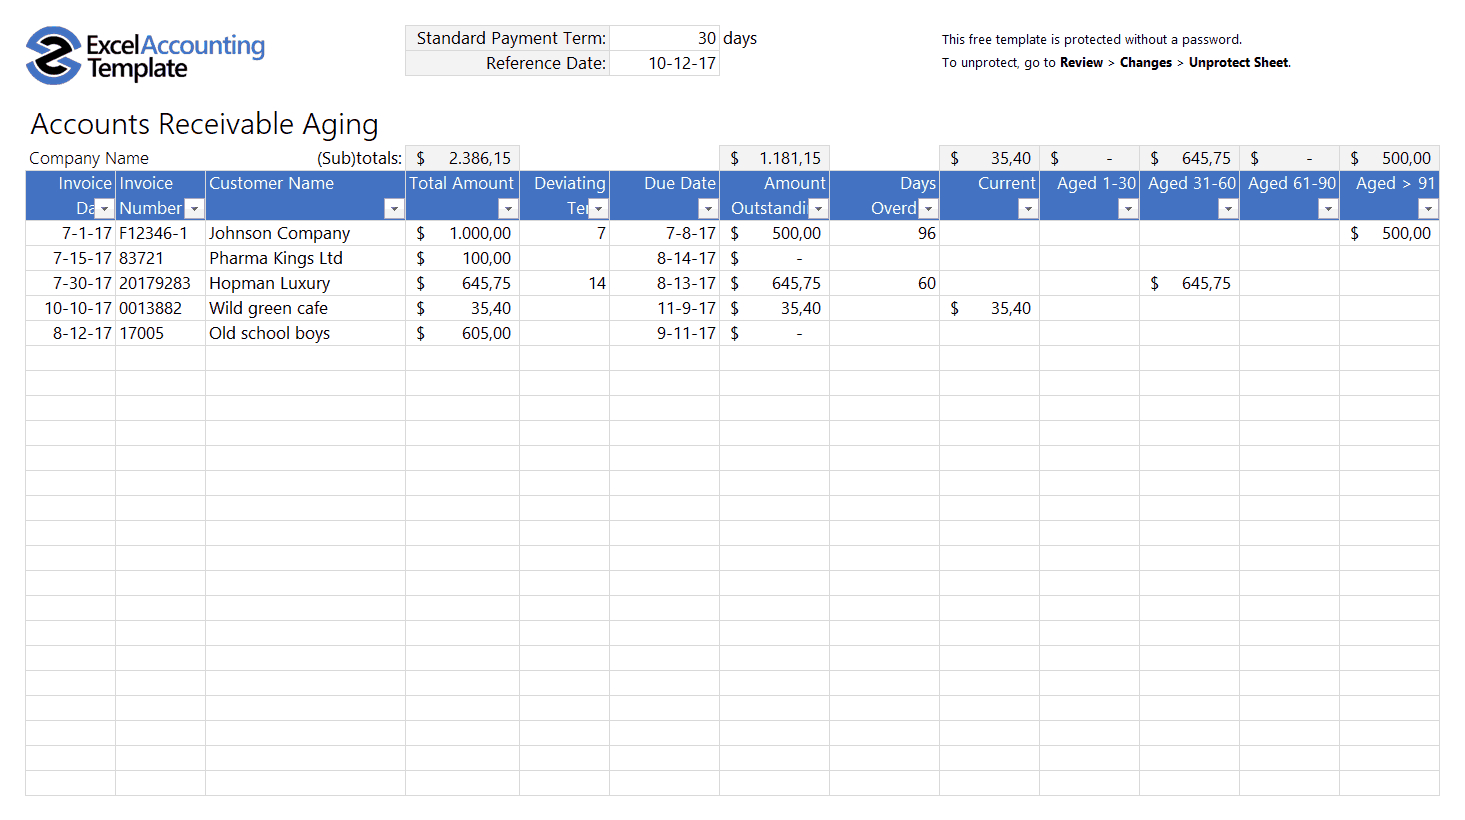 Free Accounting Templates In Excel   Download For Your Business With Basic Accounting Excel Formulas